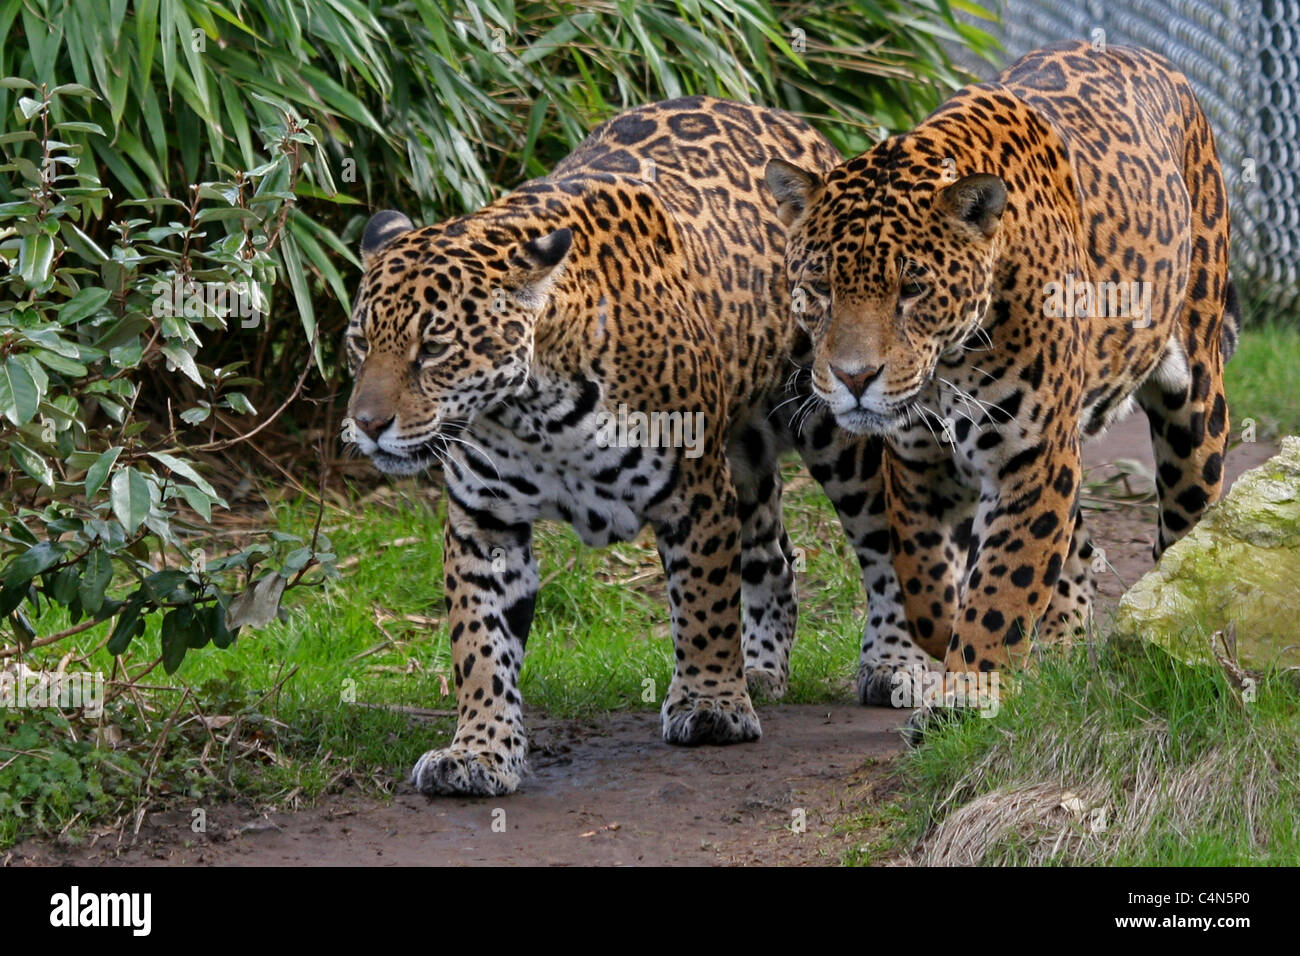 Pair of strolling jaguars - Stock Image